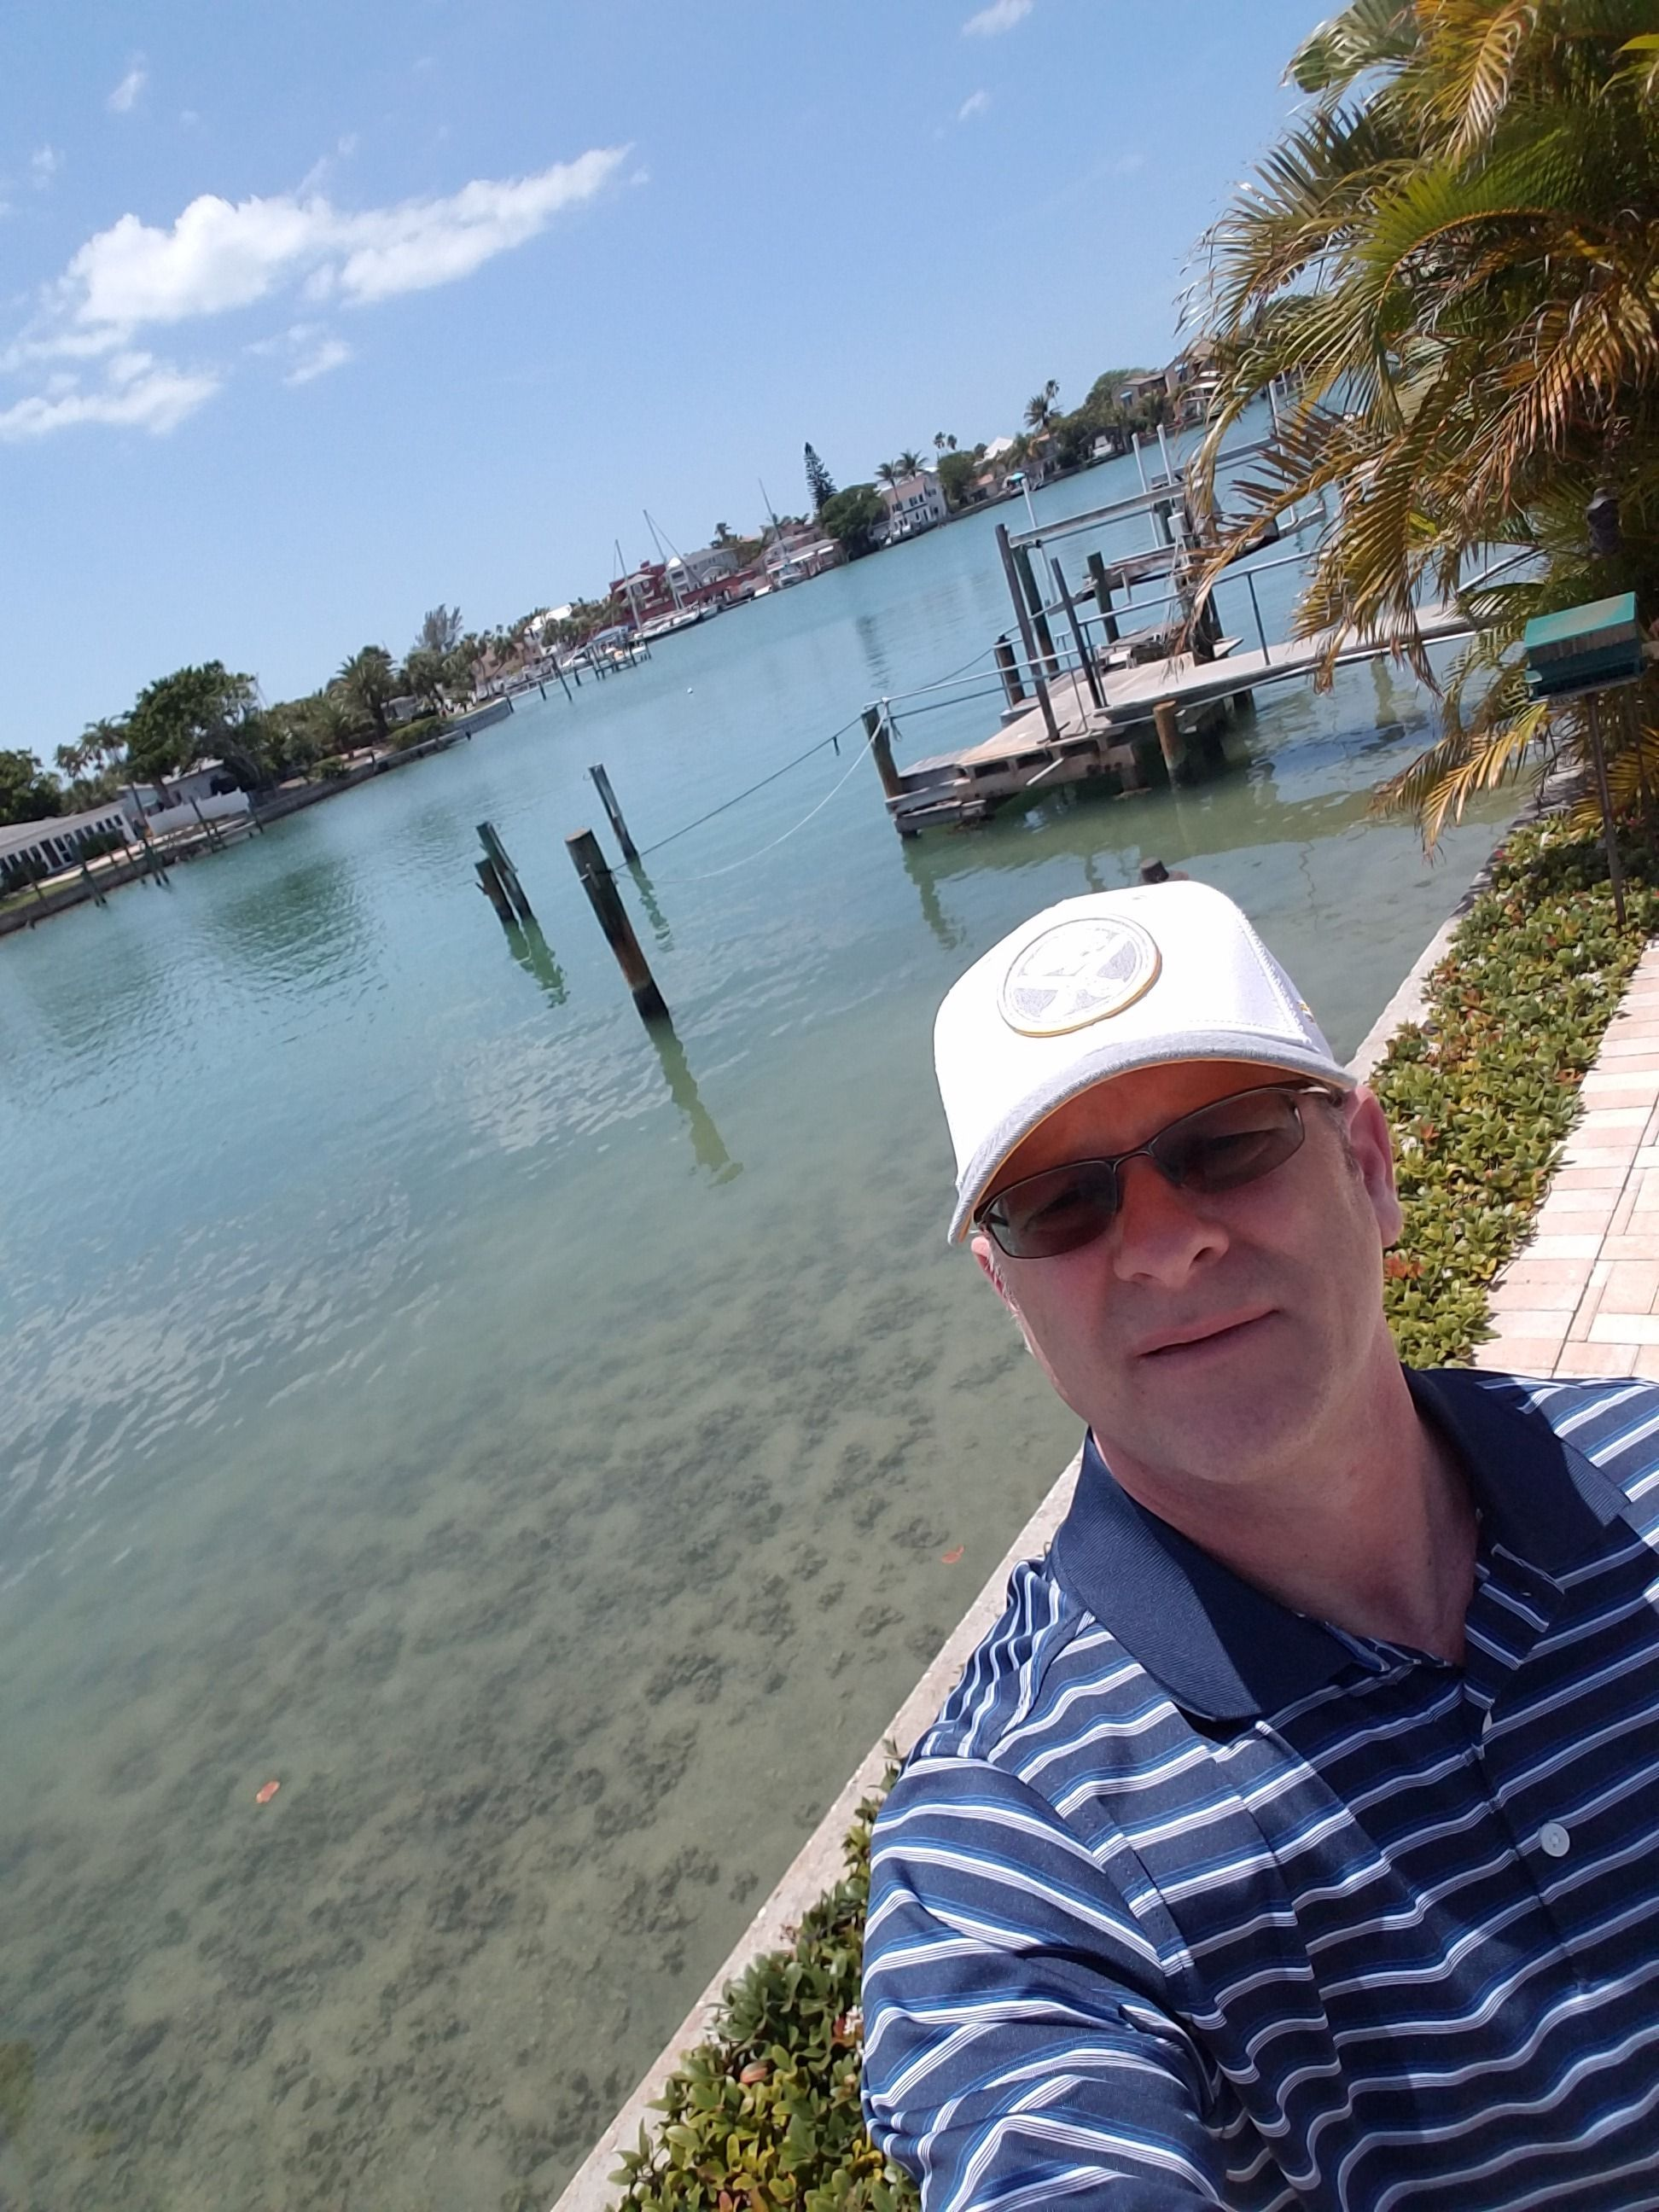 singles over 50 in new egypt Our trips attract people from all over the world who are looking to get up close and personal with our planet new zealand, and europe solo travel put the.